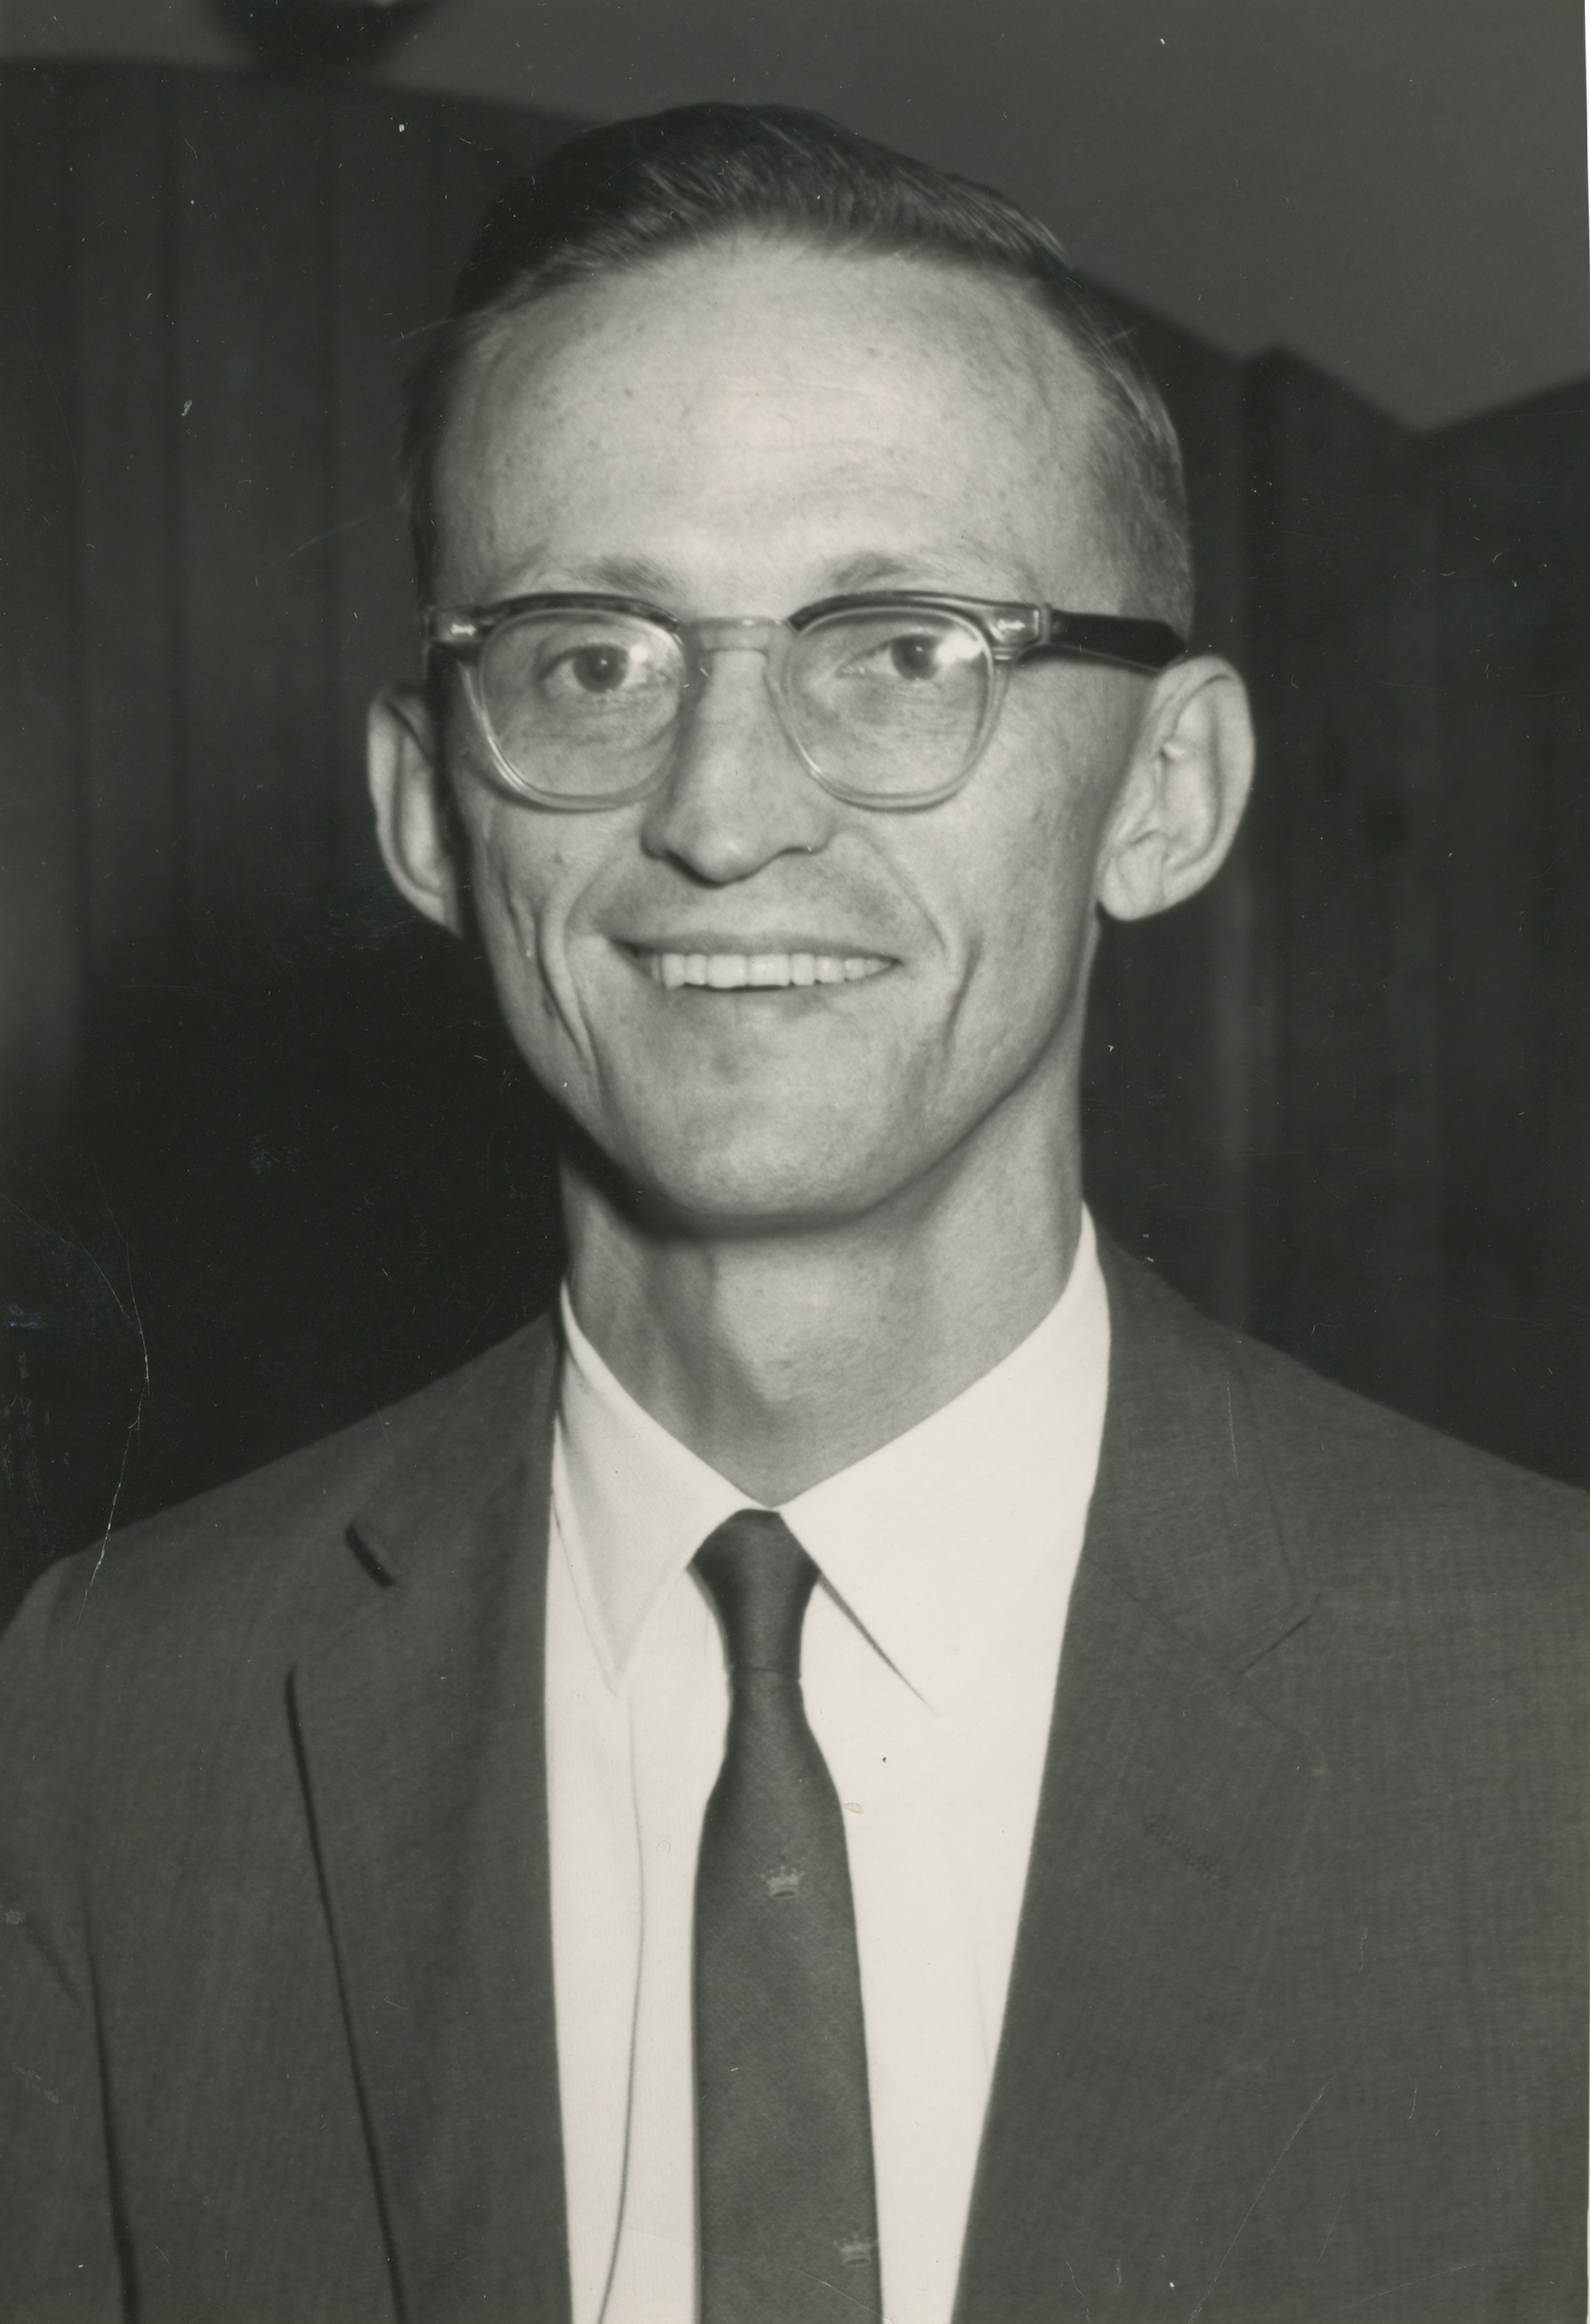 University of Michigan Professor Philip E. Converse, circa 1960s image